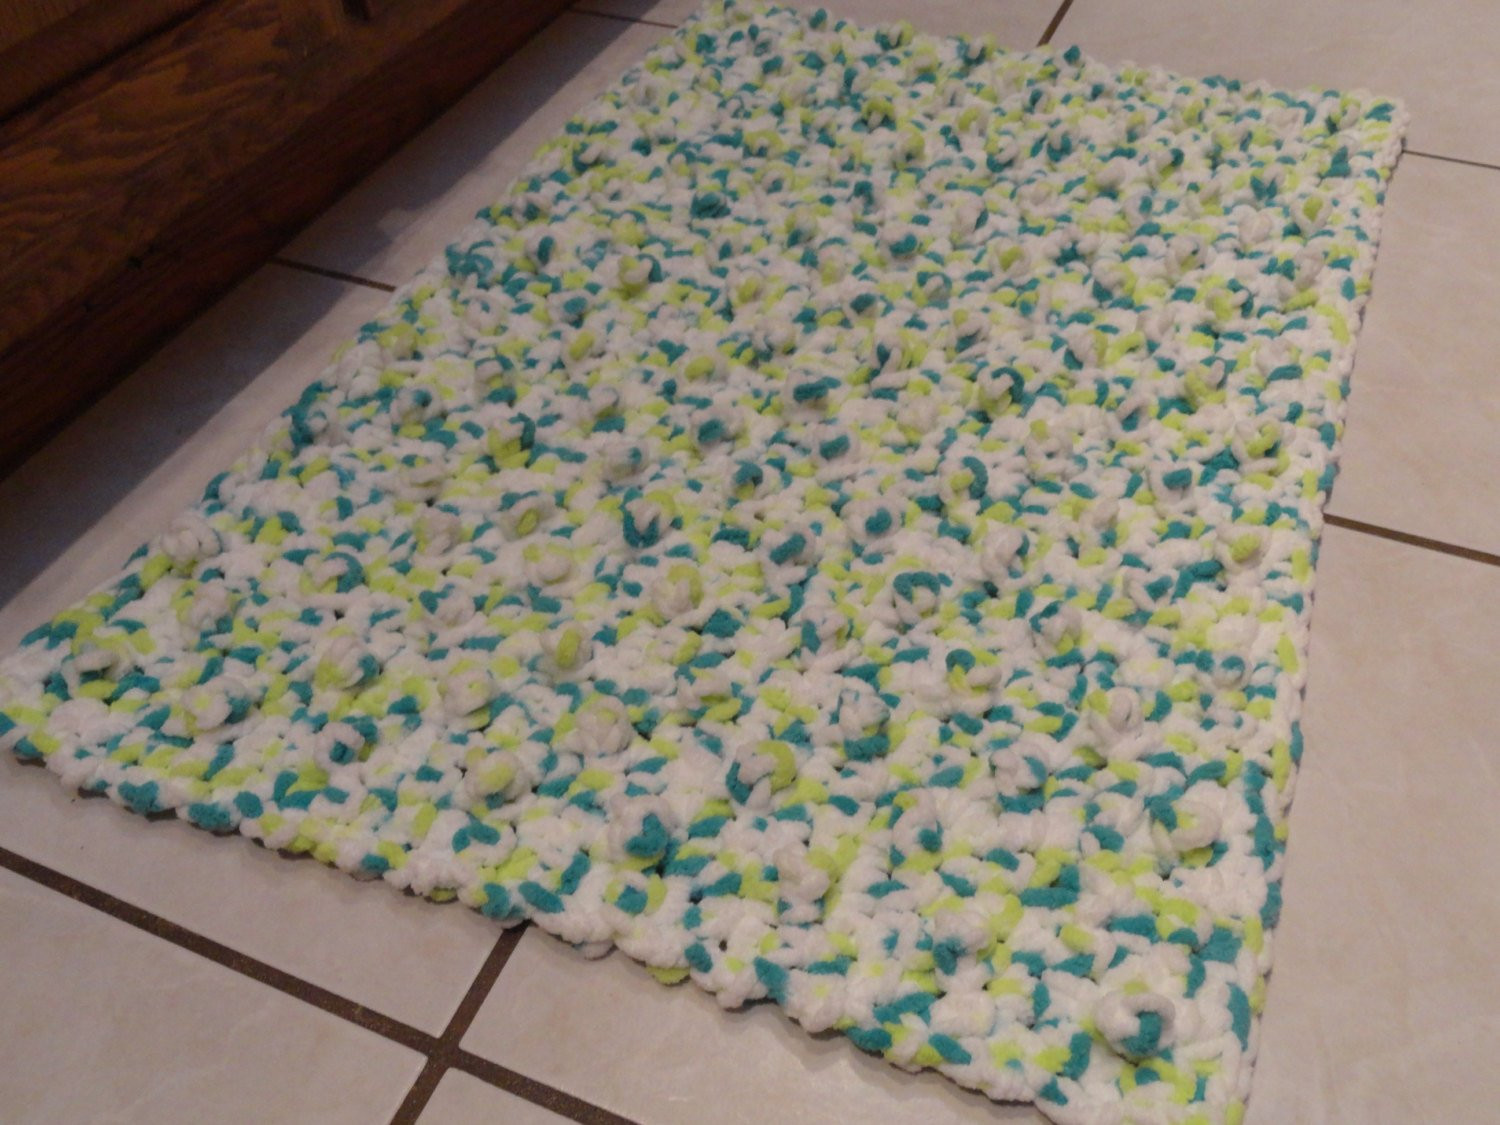 Crochet Bathroom Rug White Citron Teal Bumpy Bath Mat Kitchen